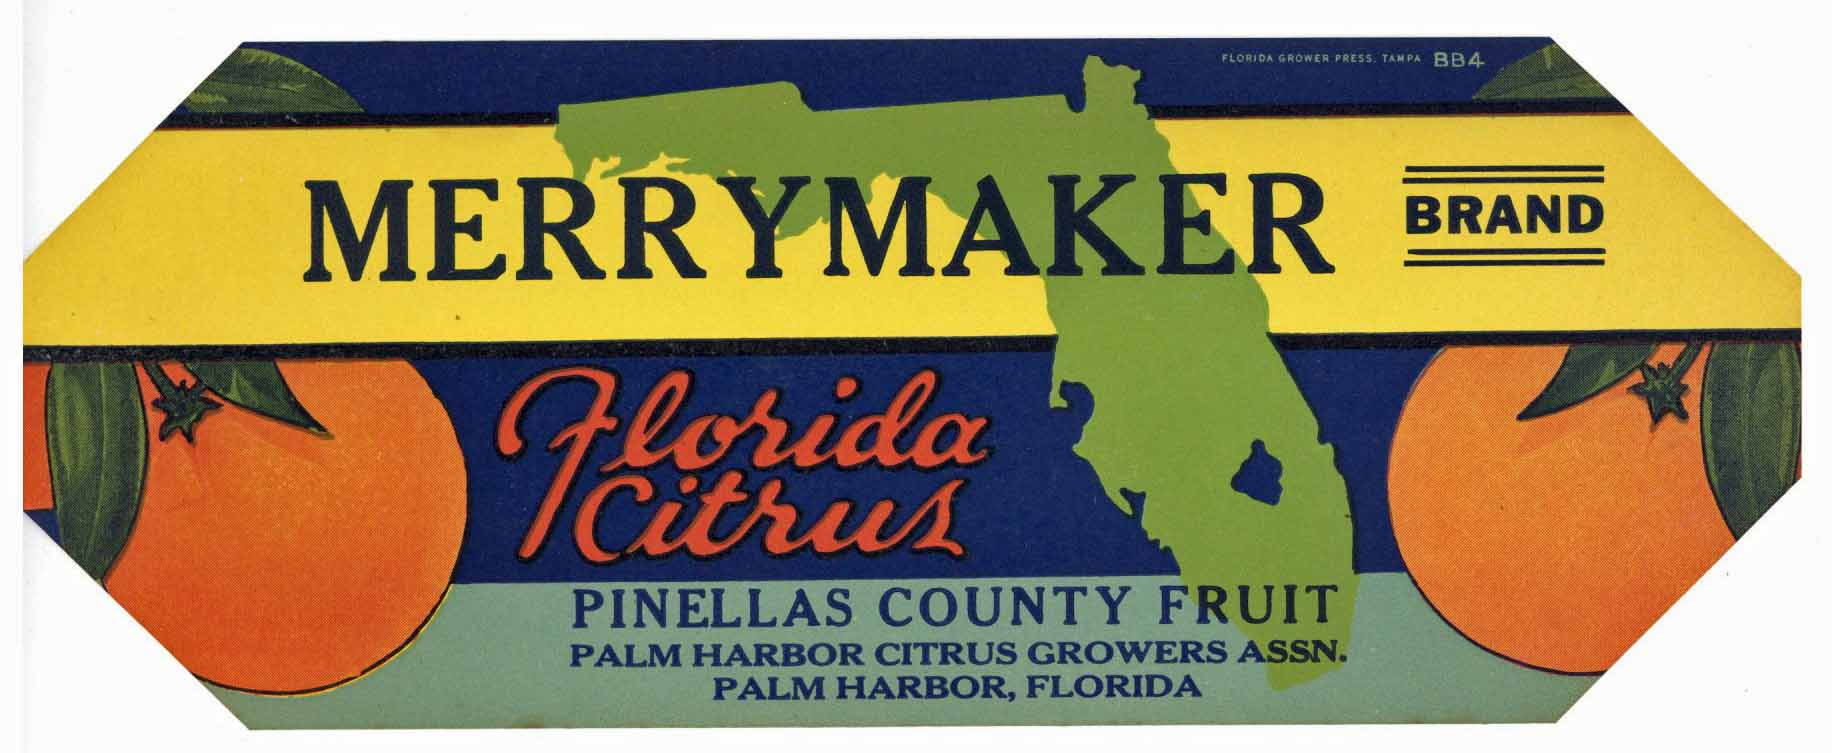 Merry Maker Brand Vintage Palm Harbor Florida Citrus Crate Label